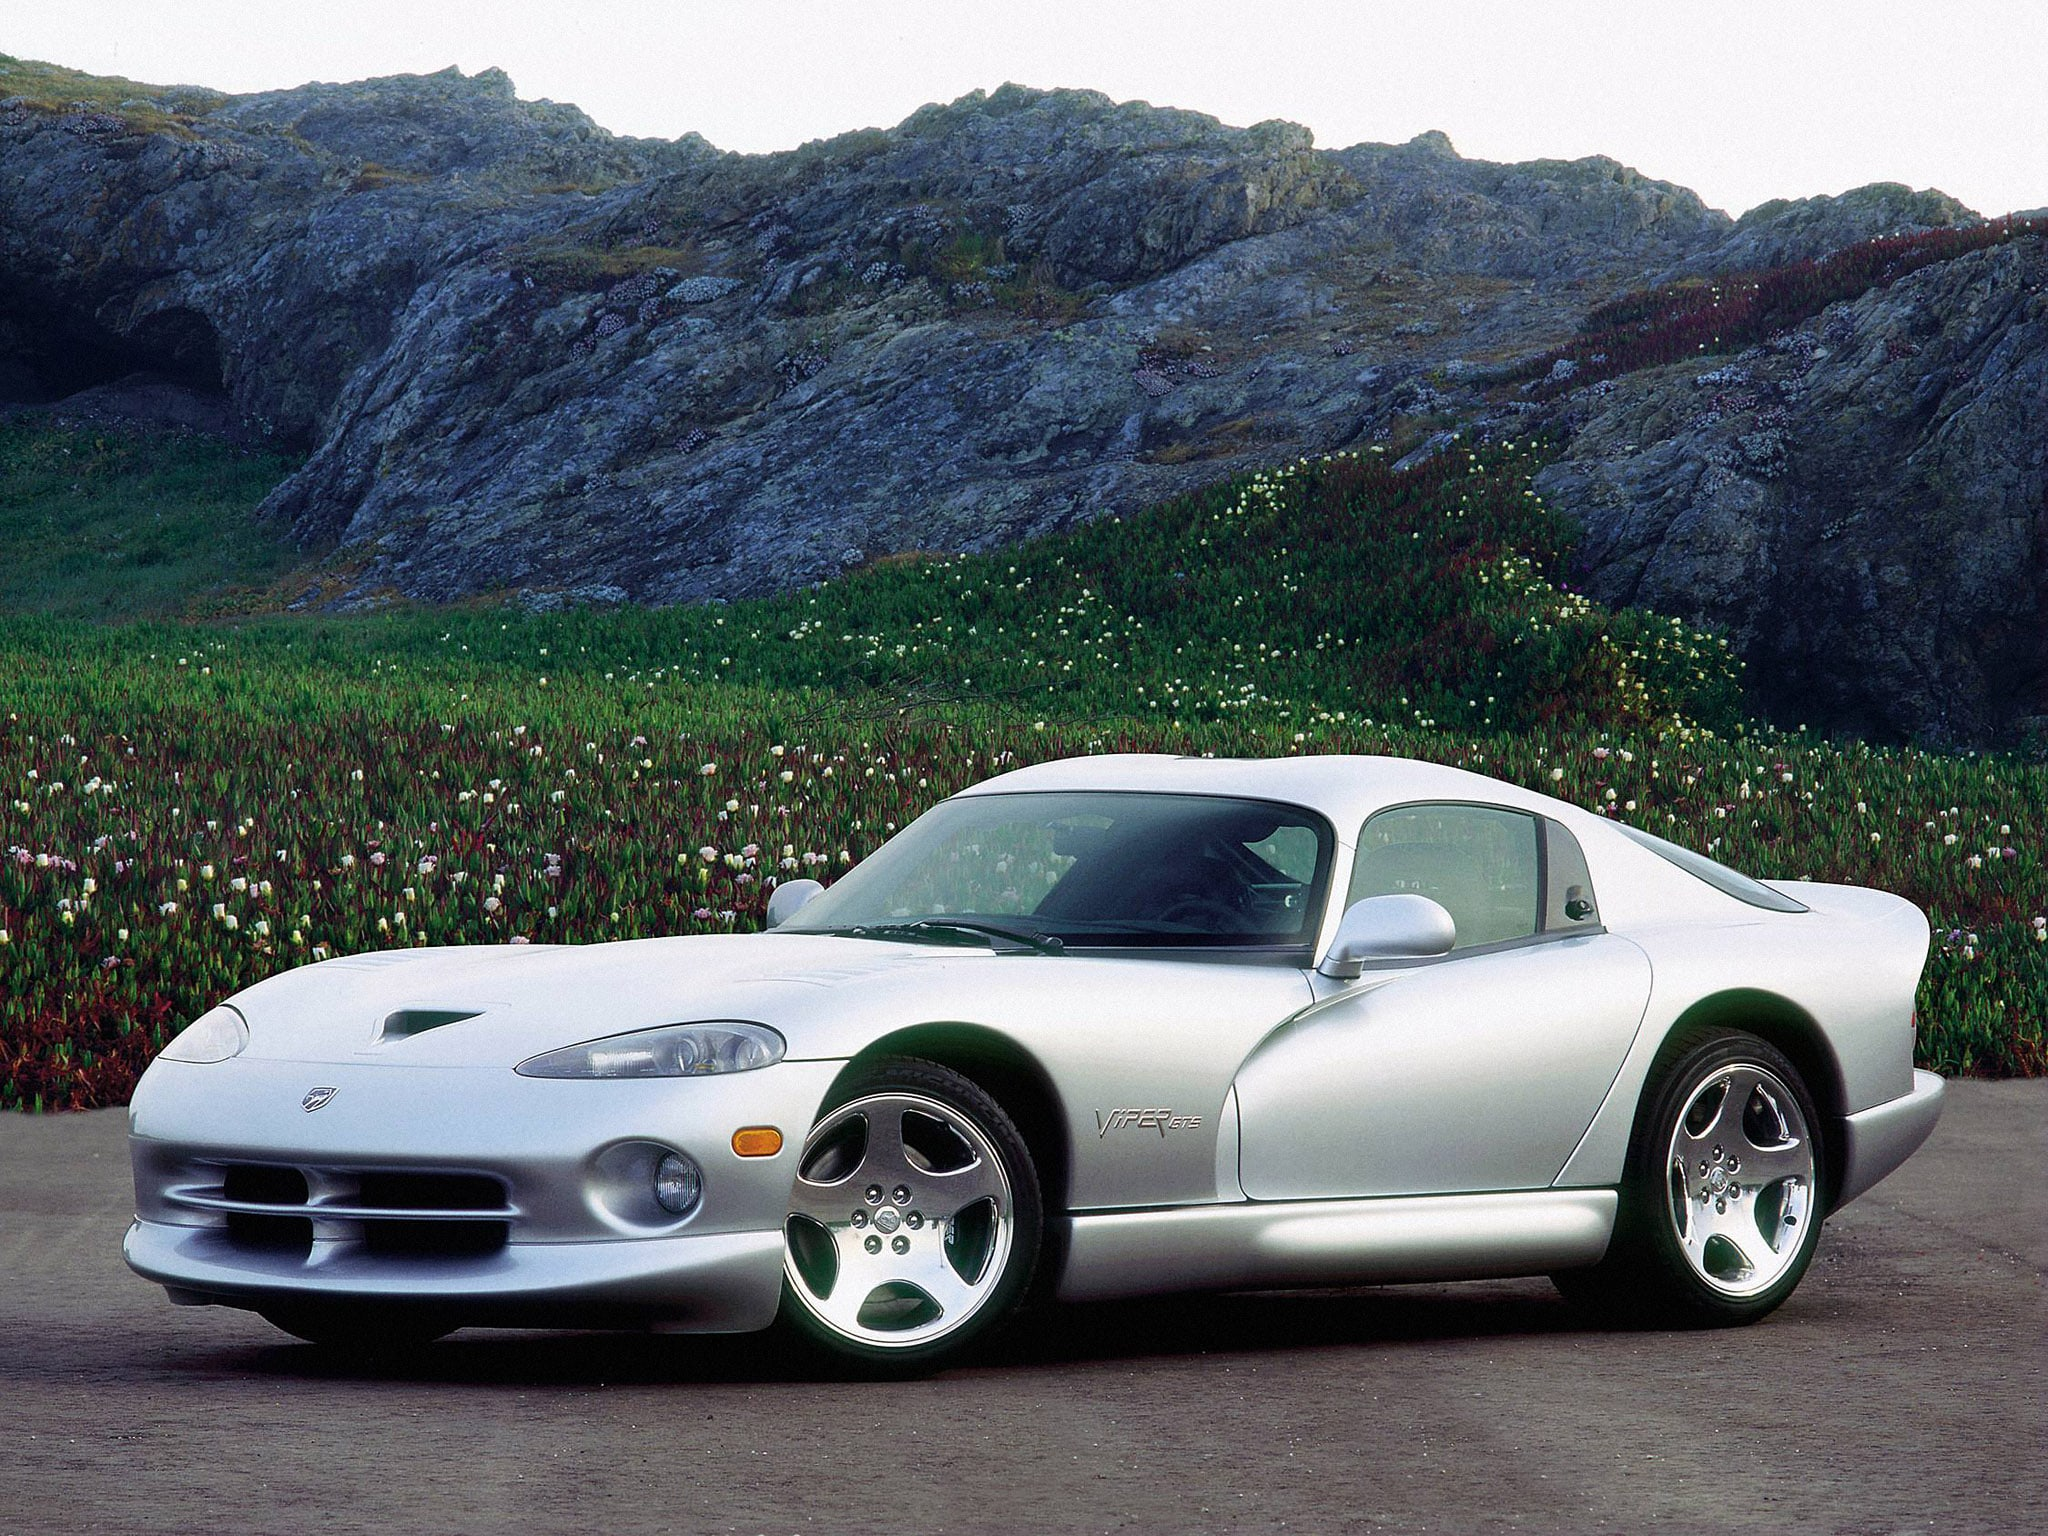 1996 Dodge Viper GTS Screensavers